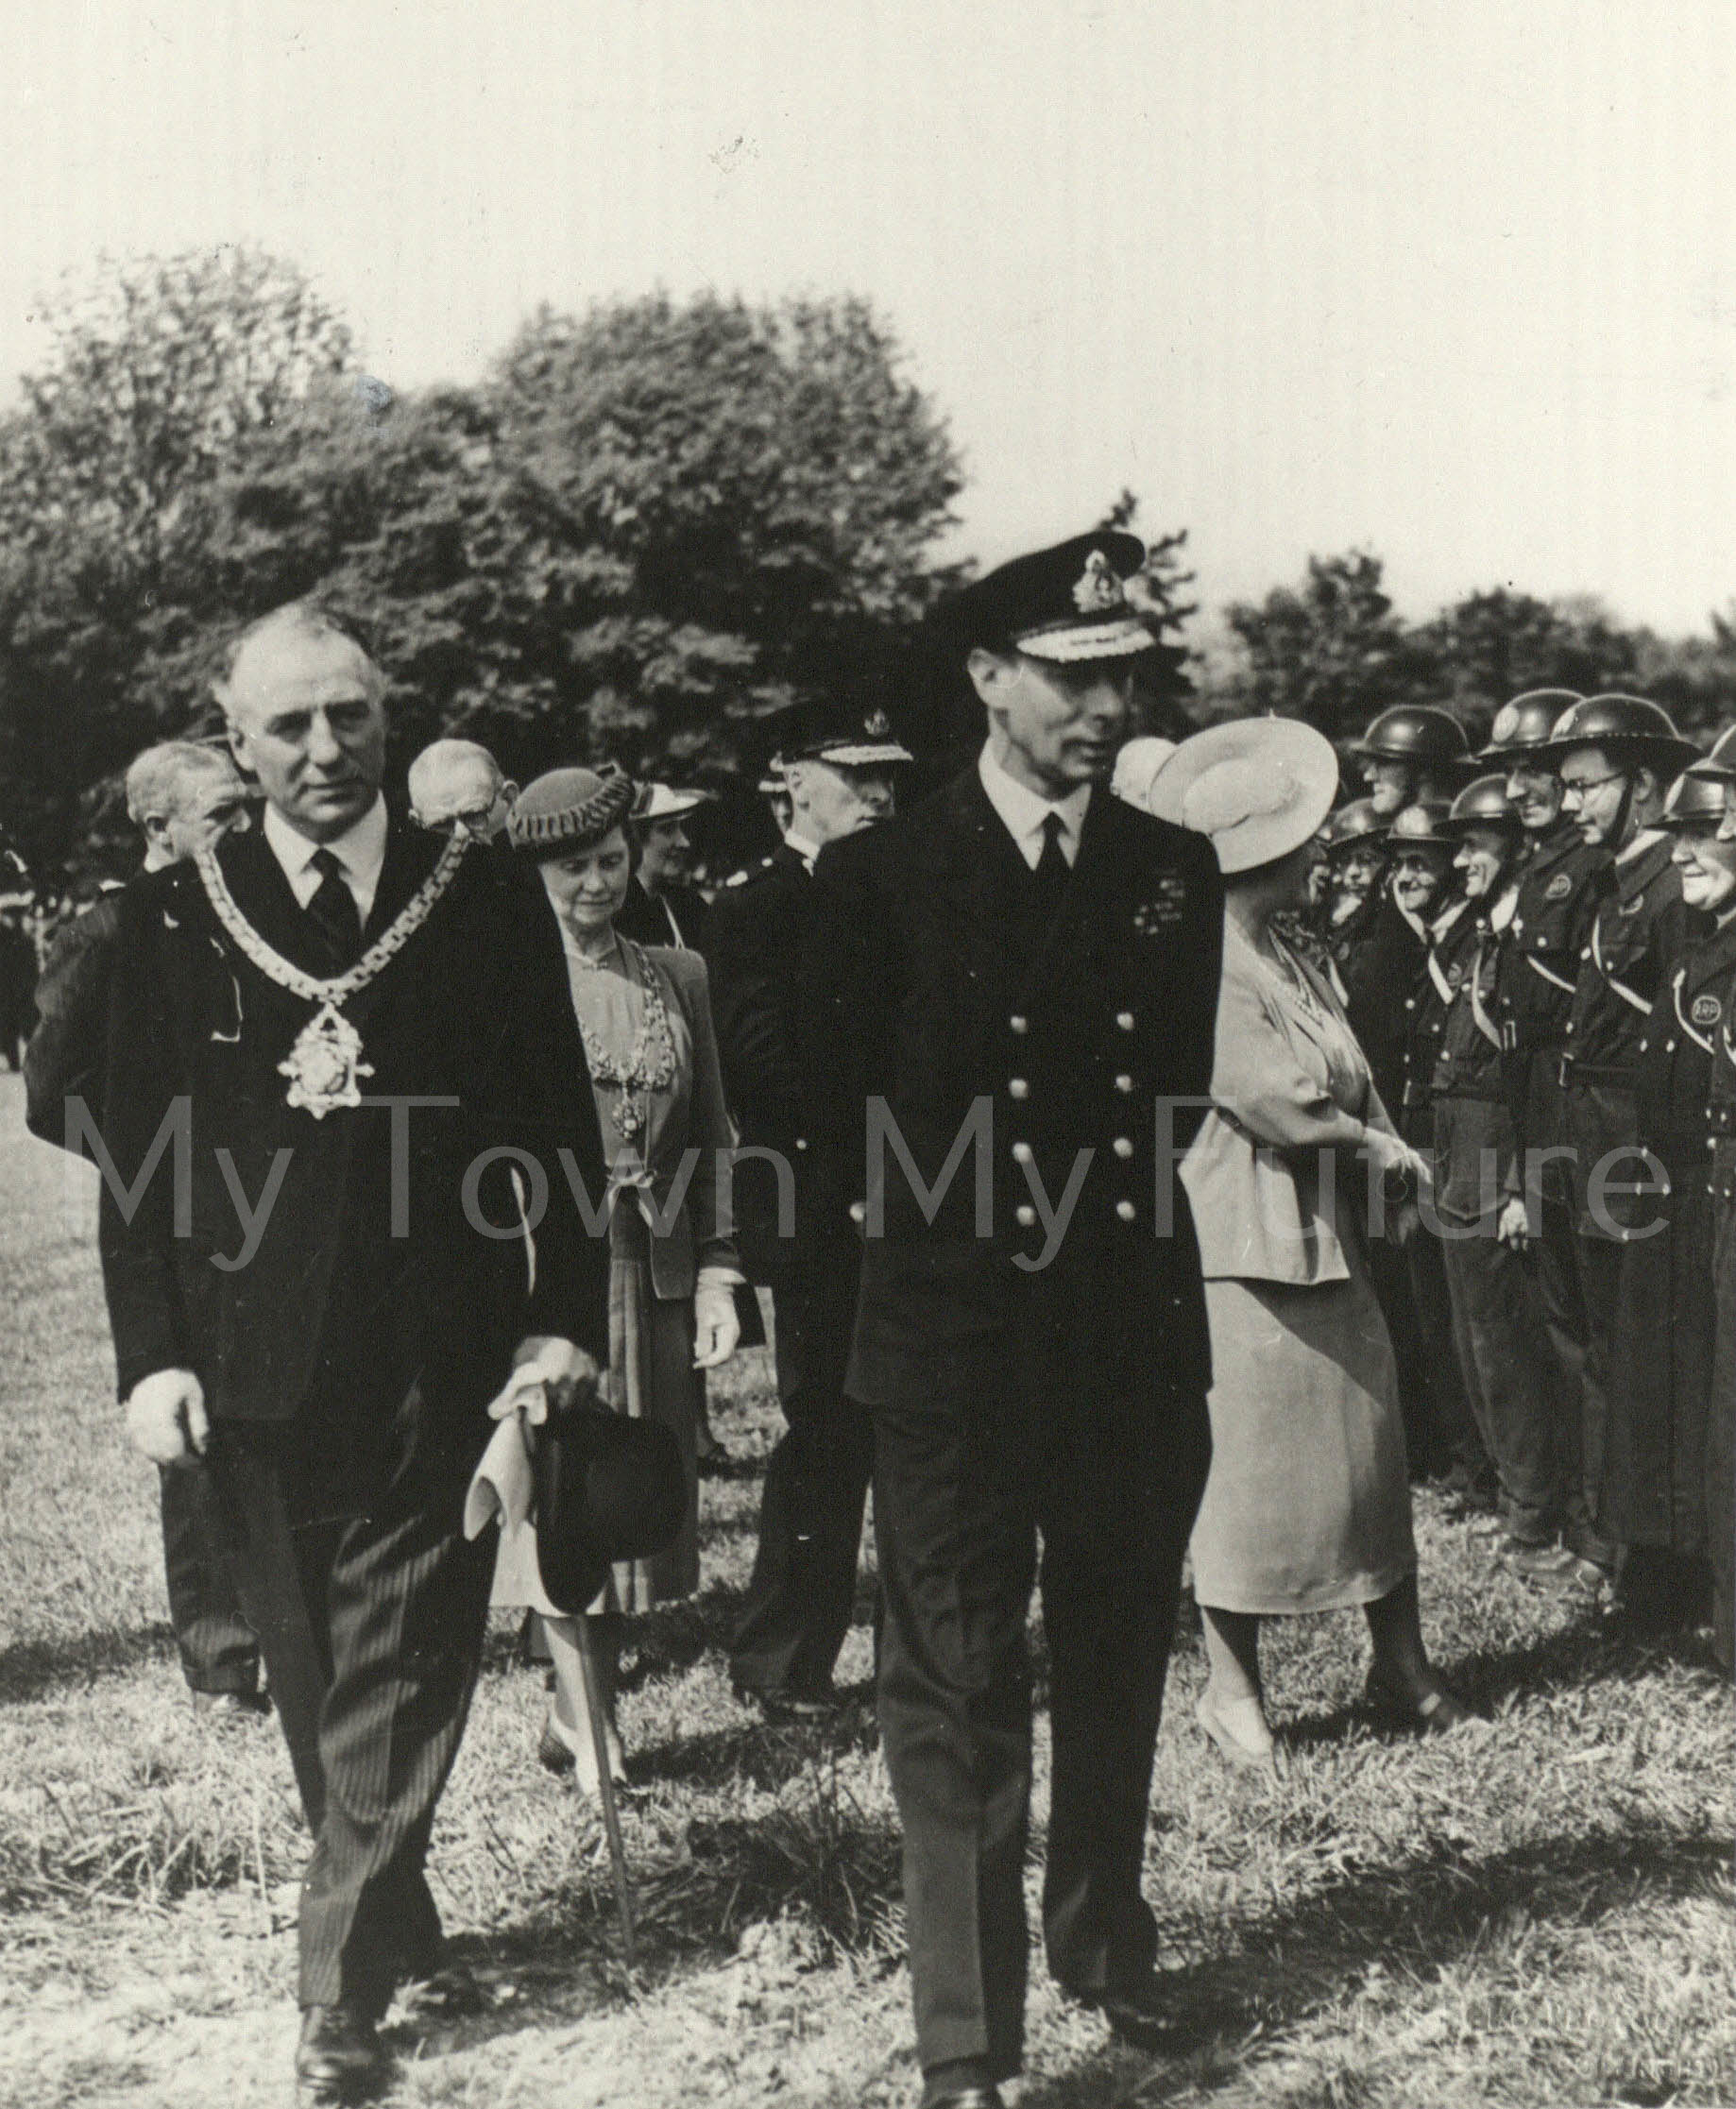 King and Queen Visting Civil Defence Services_19th August 1941 - Albert Park with Sir William Crosthwaite - JP - Mayor DofP - Cleveland County Council